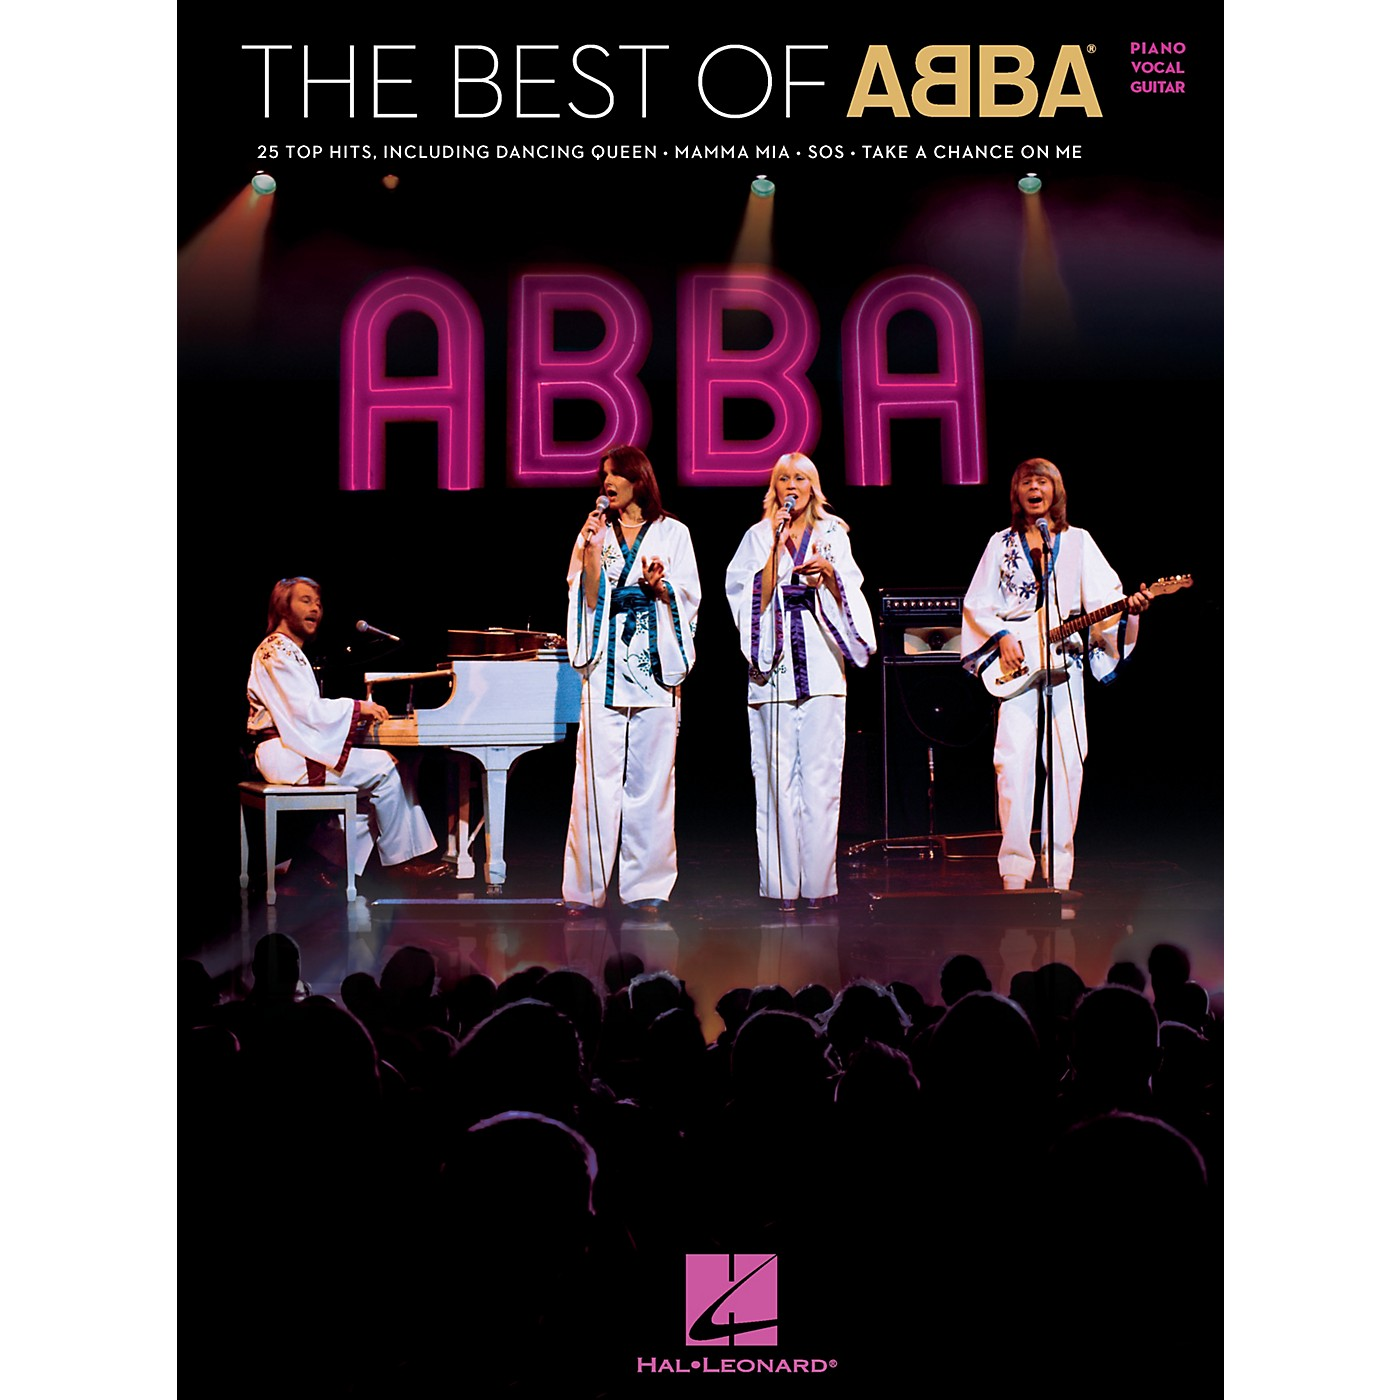 Hal Leonard The Best of ABBA Piano/Vocal/Guitar Songbook thumbnail